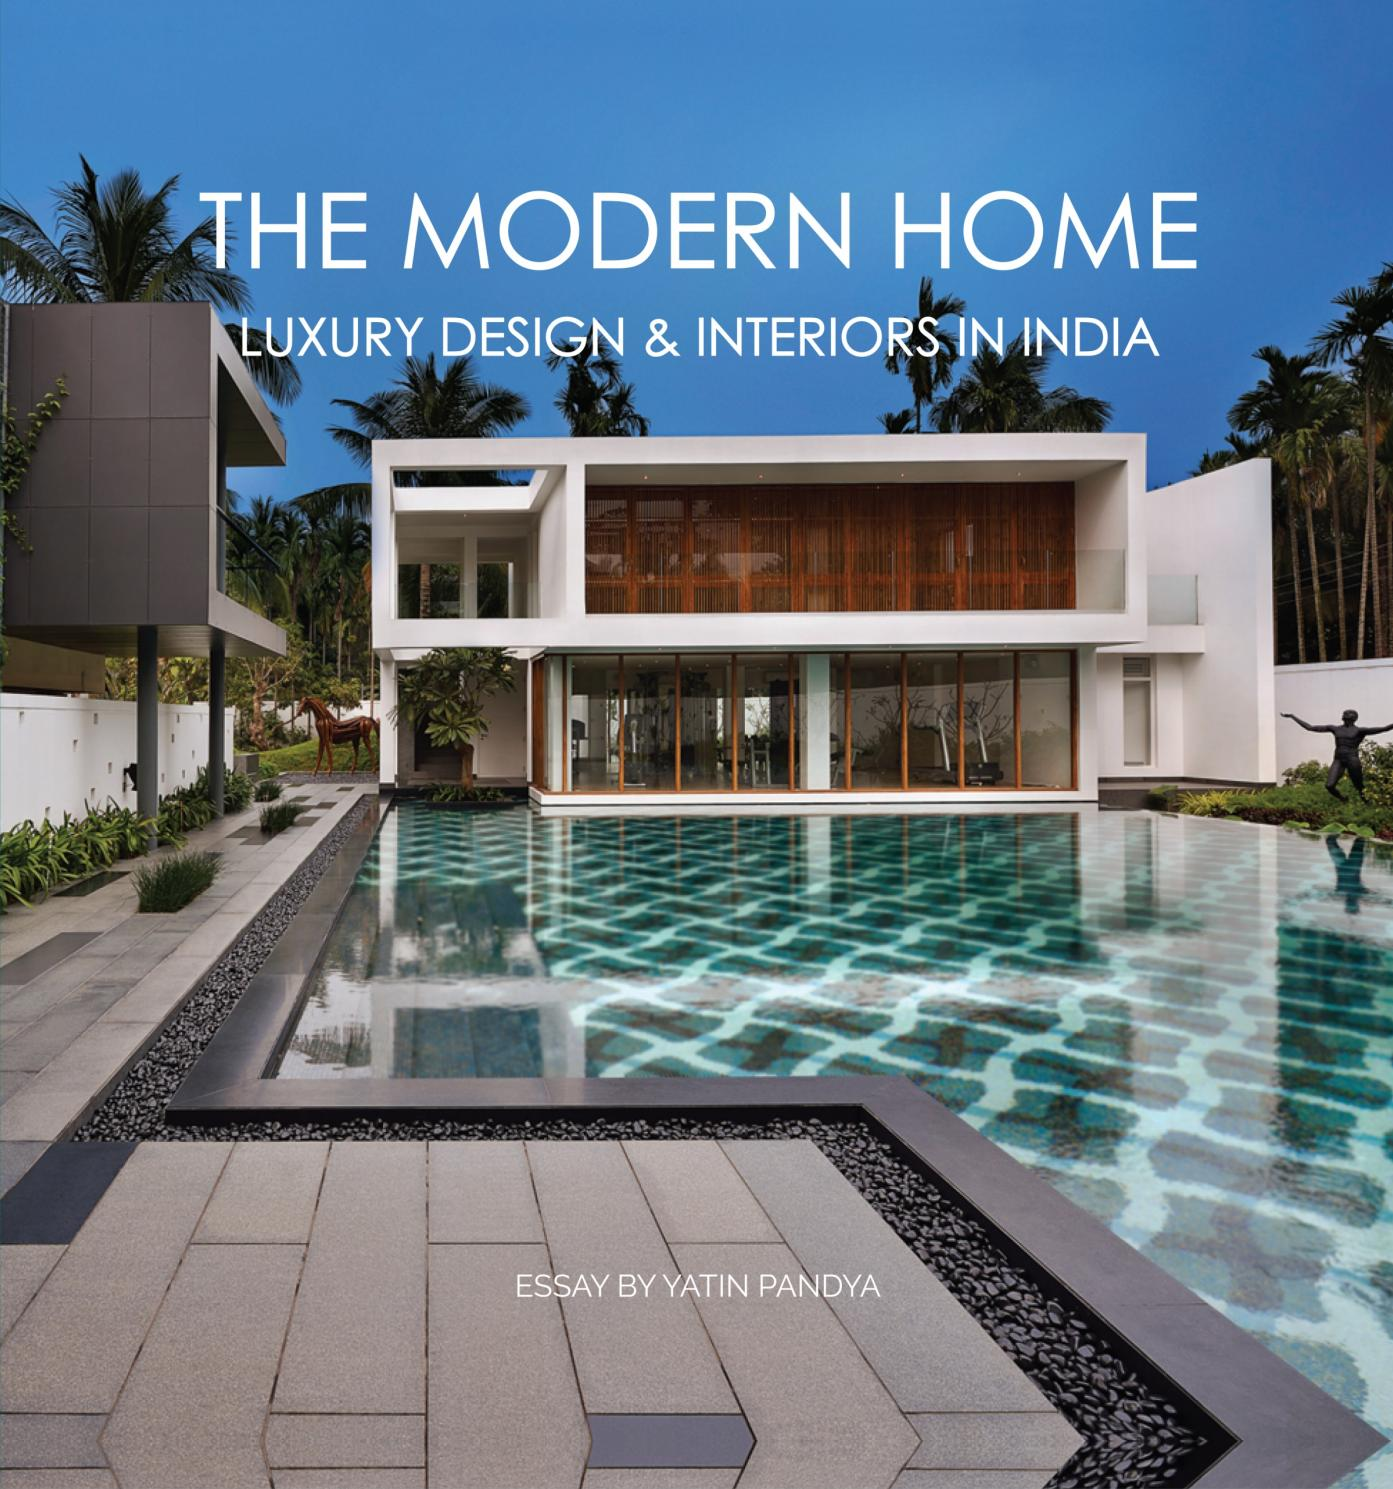 Modern Indian Architecture Google Search: The Modern Home Luxury Design & Interiors In India By